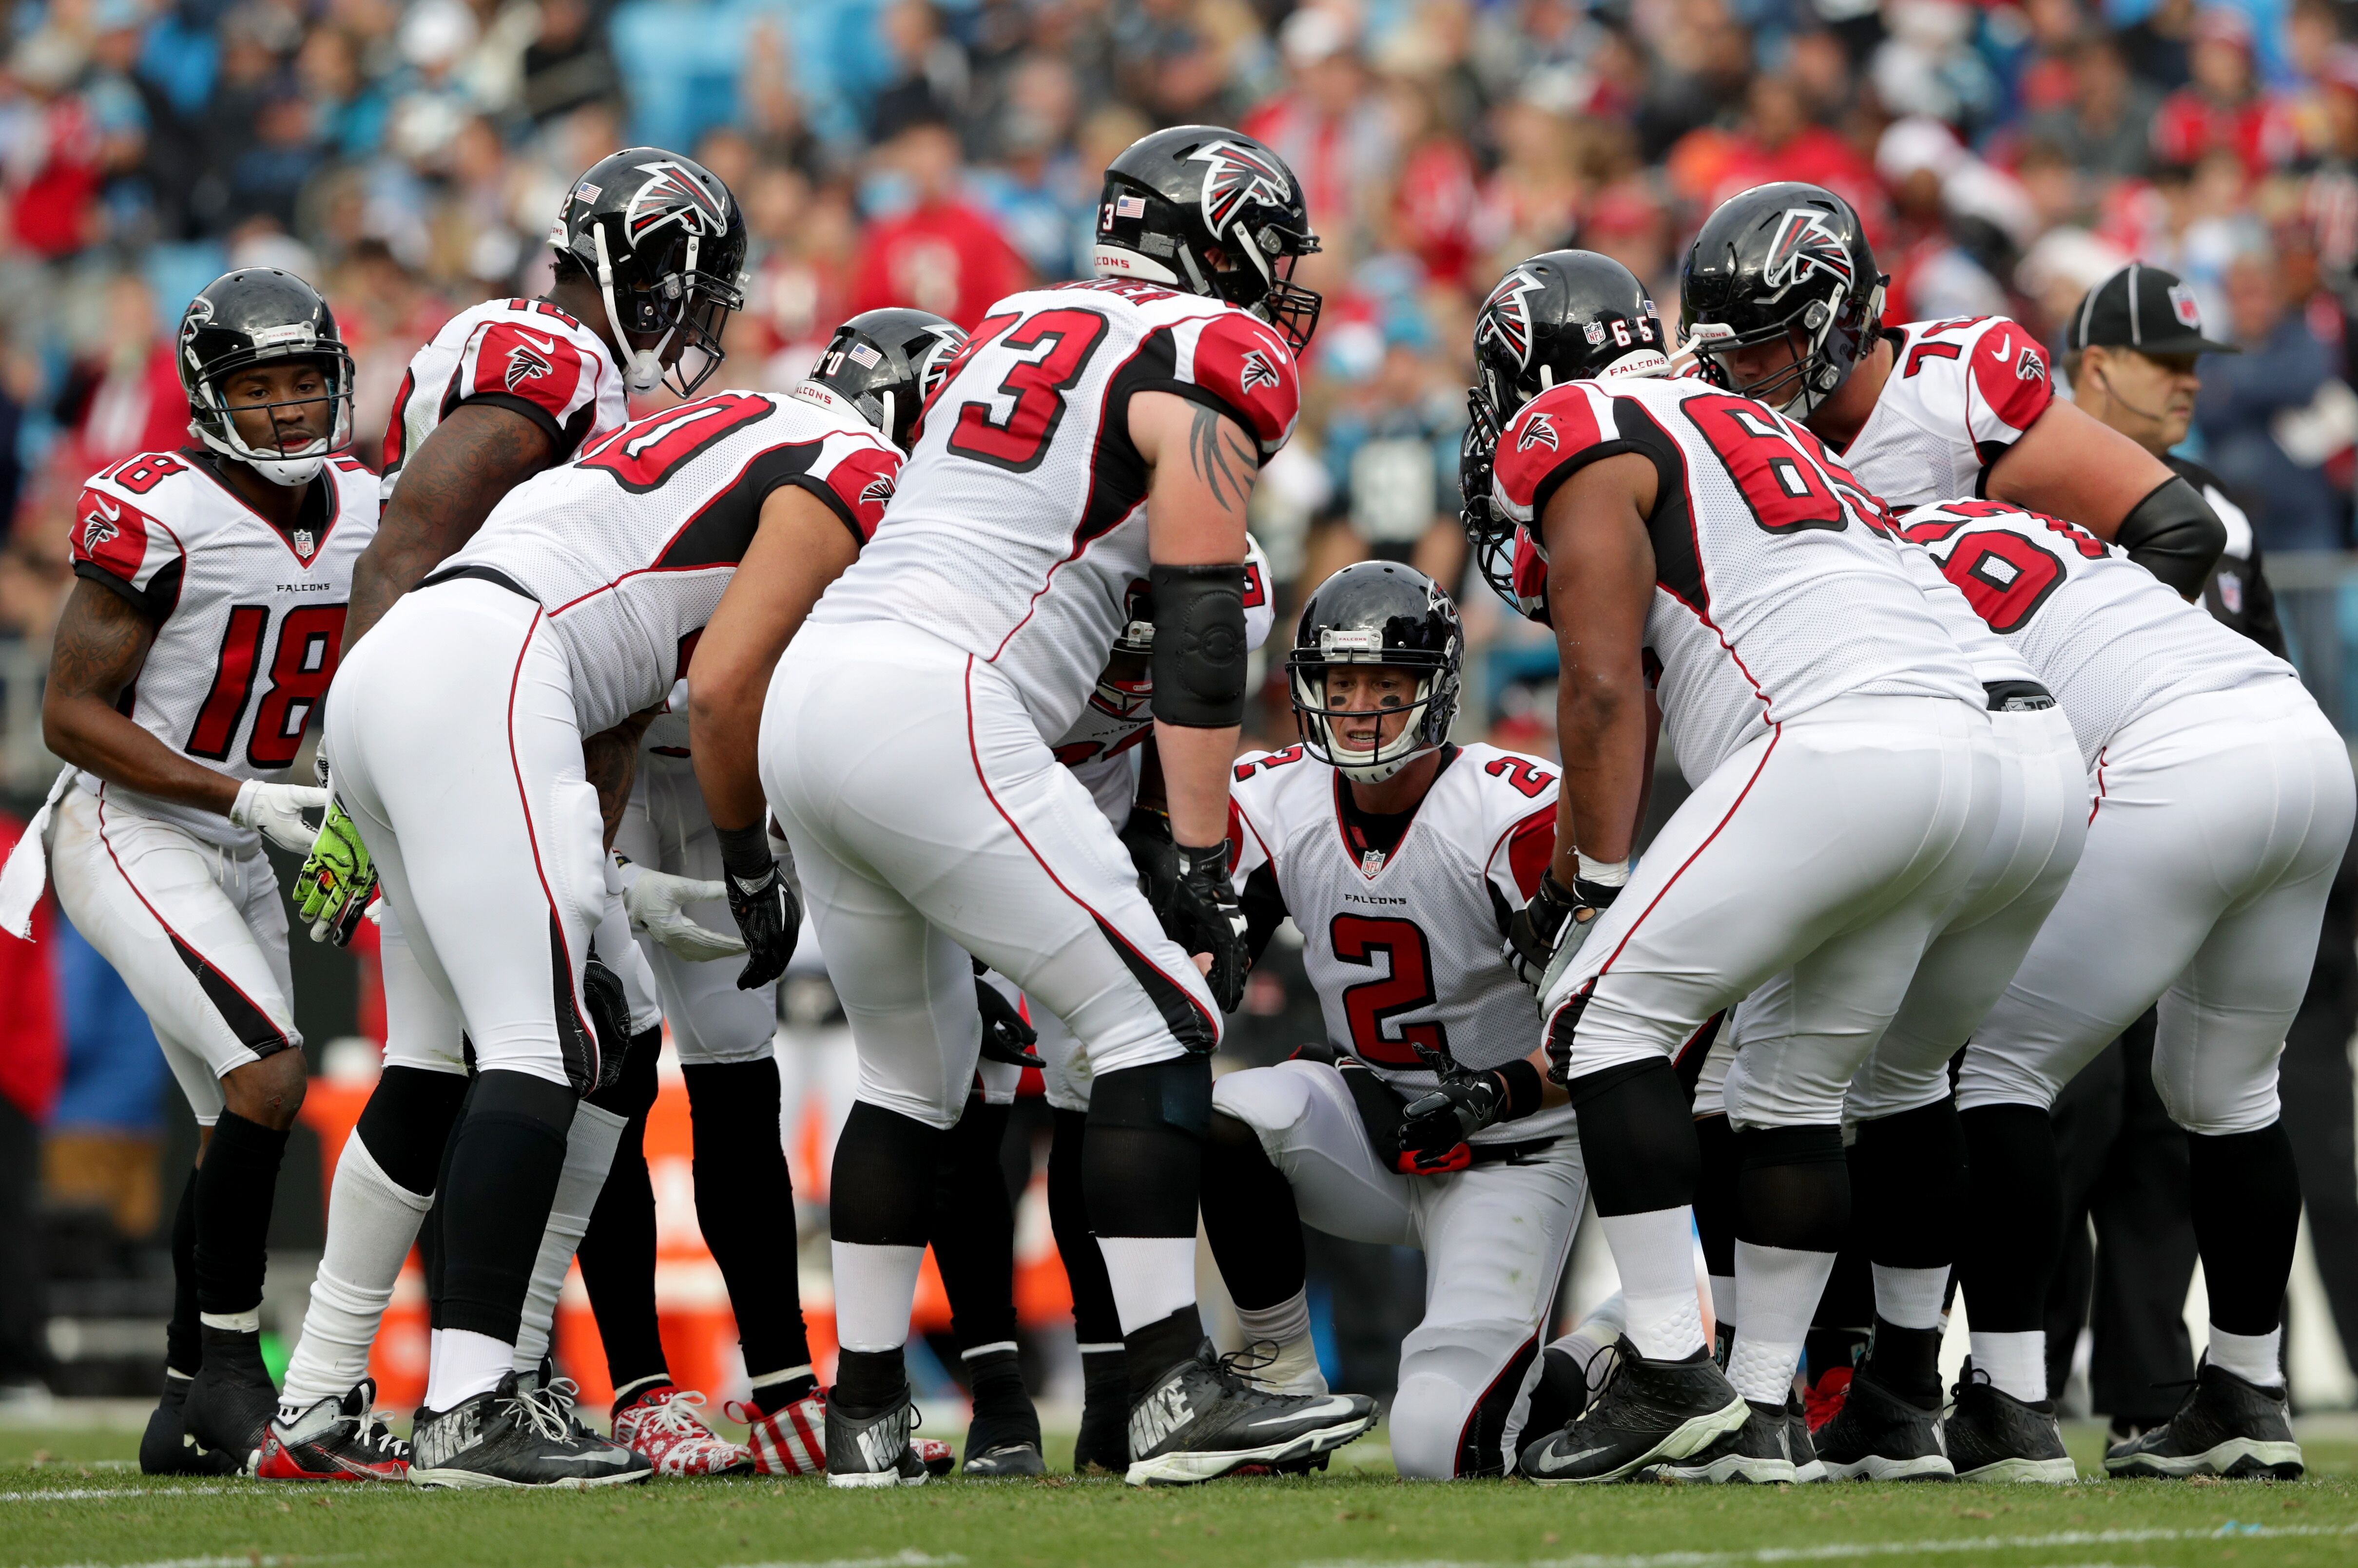 Atlanta Falcons tend to play well during elections years